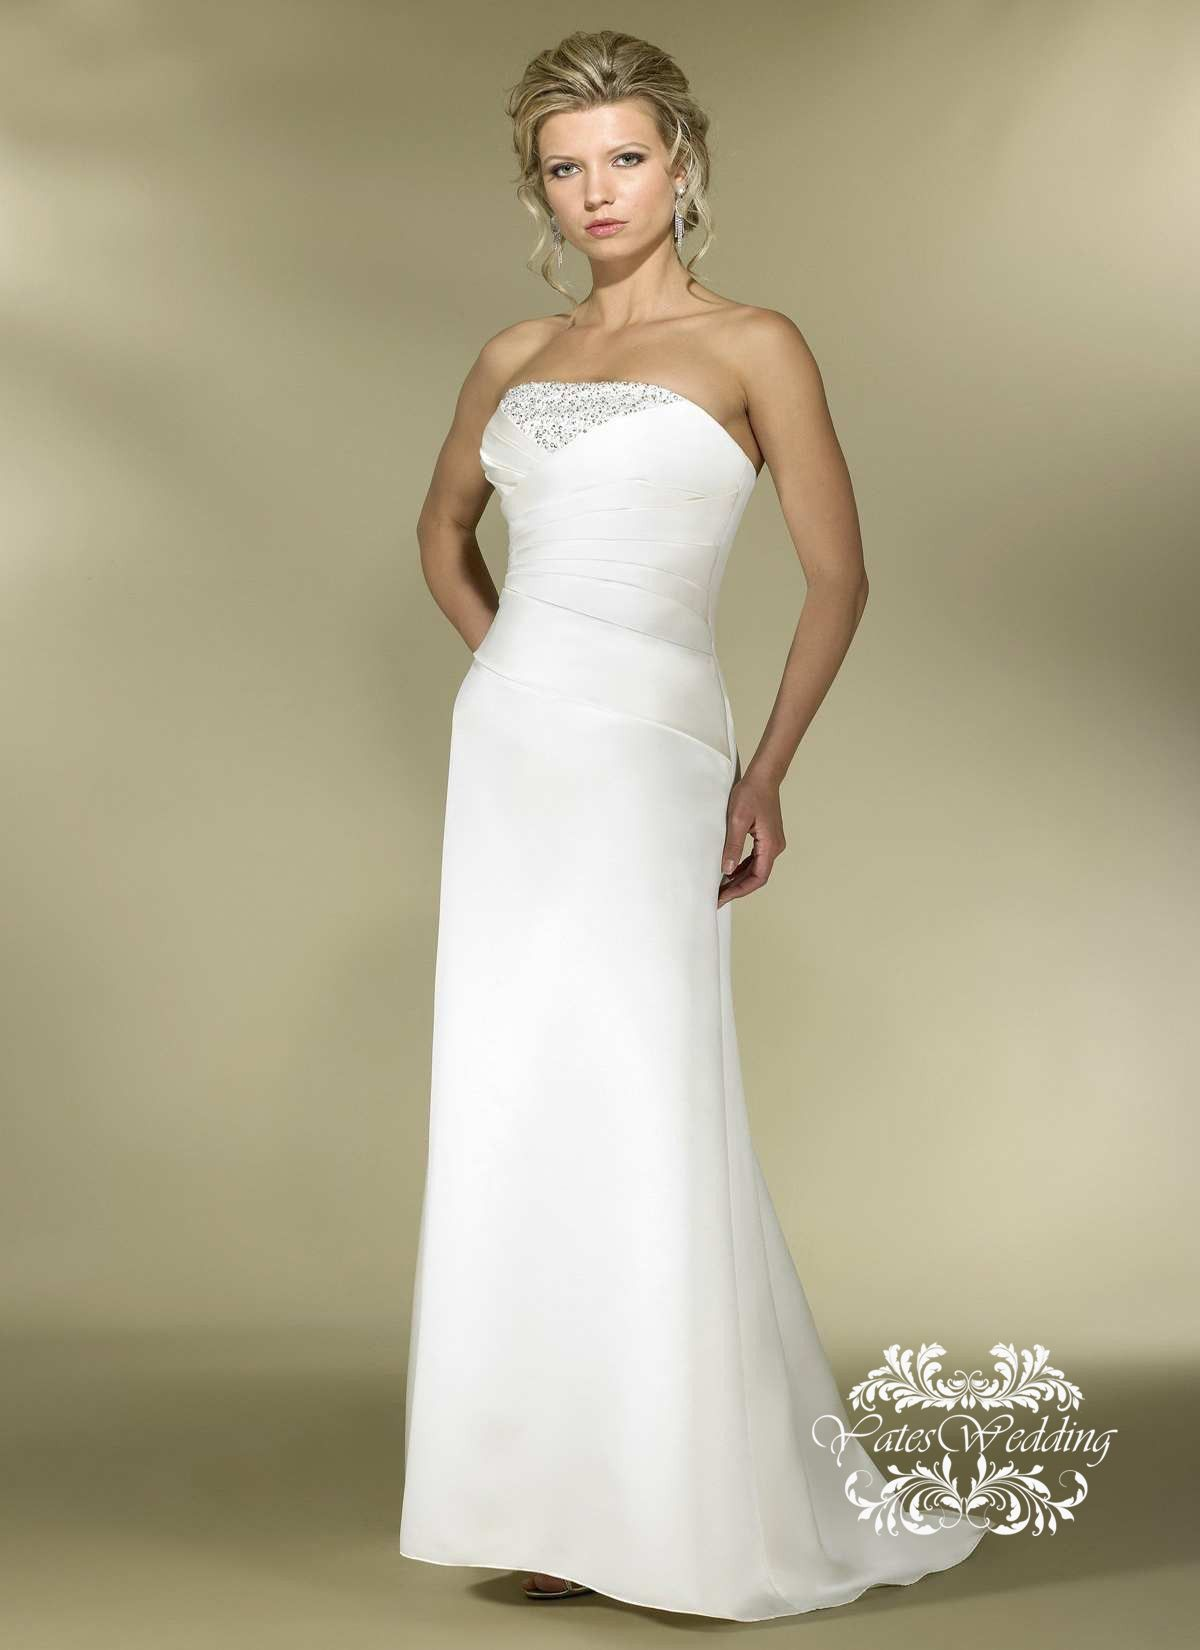 Jcpenney Dresses for Weddings - Best Wedding Dress for Pear Shaped ...